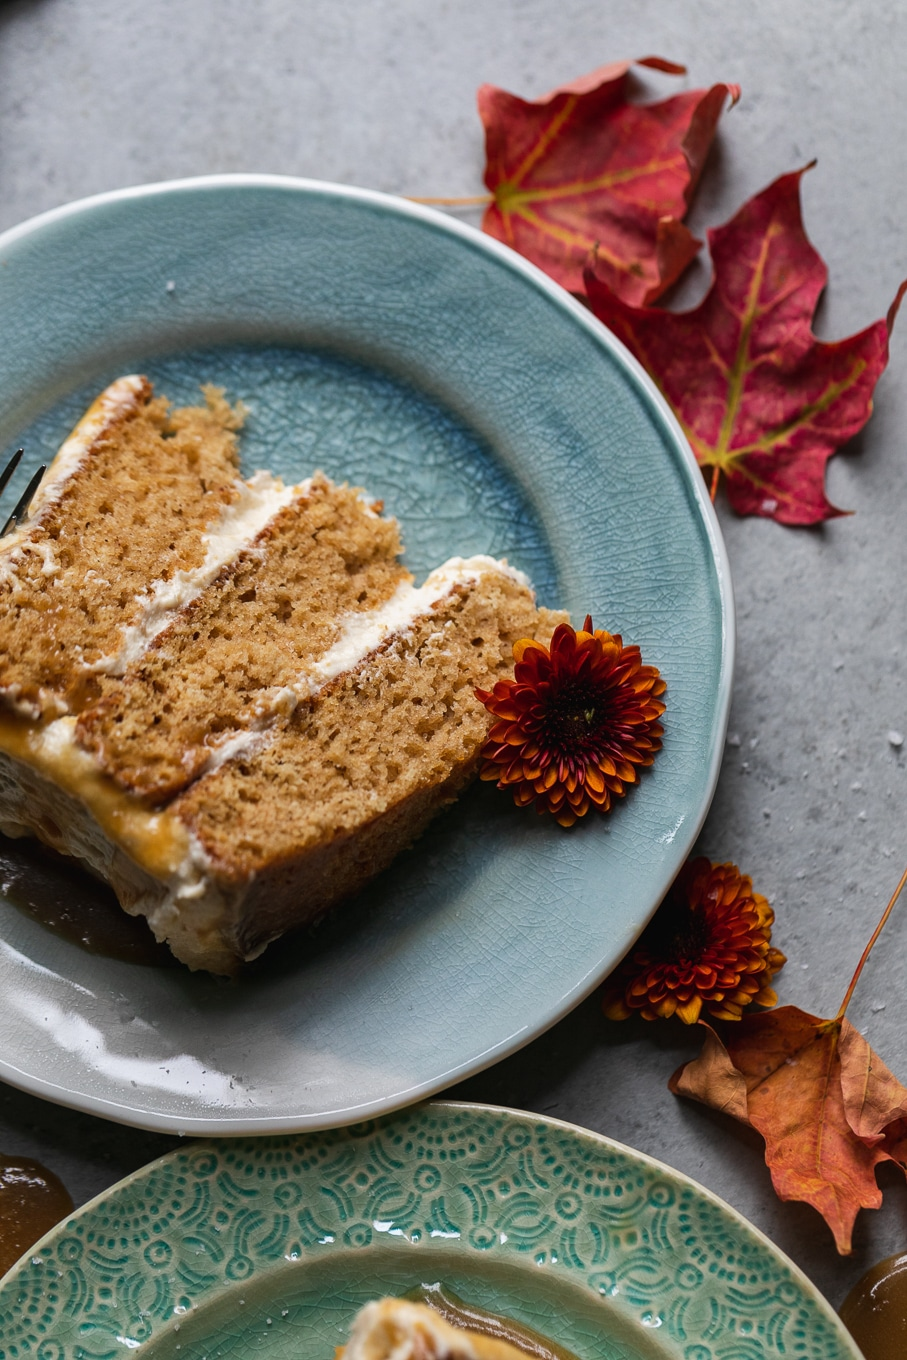 Close up shot of a slice of maple cake on a blue plate with an orange flower